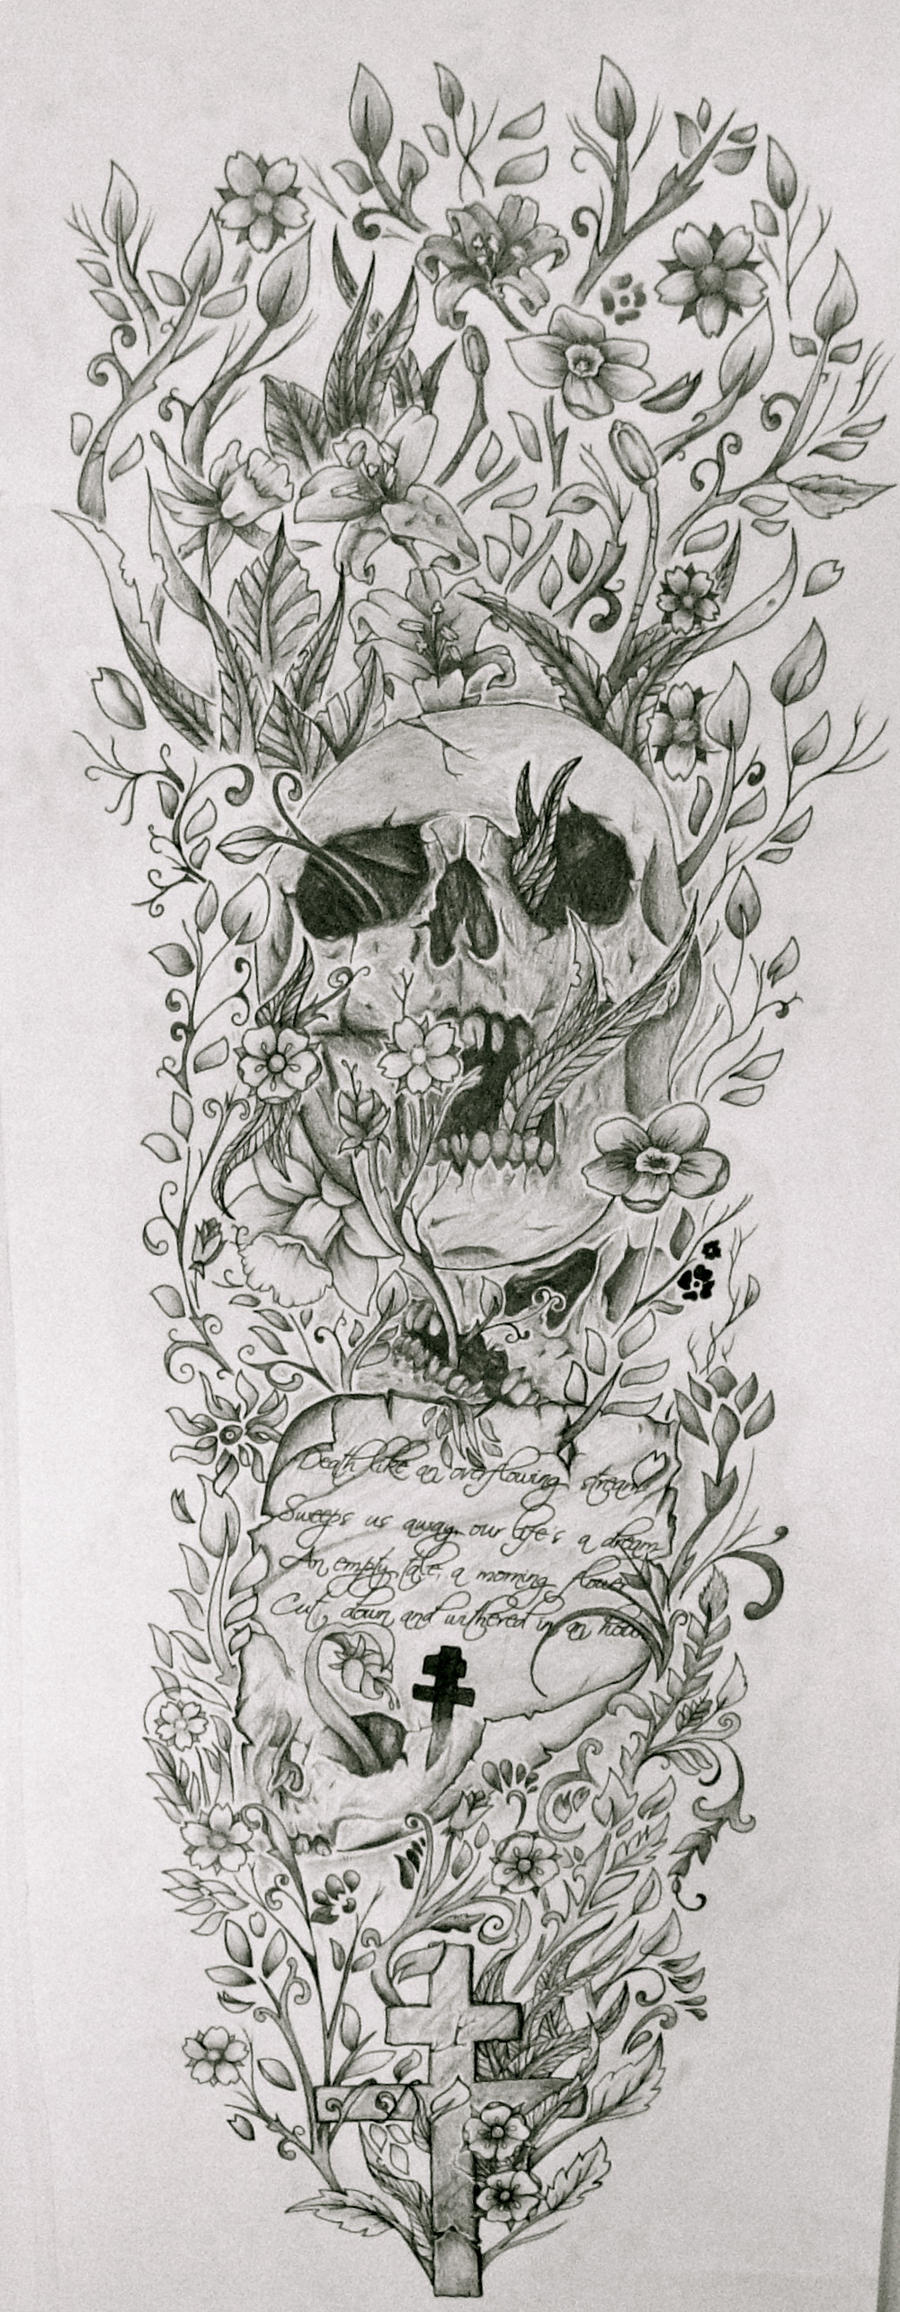 Tattoo Sleeve Sketches: Full Sleeve By Josephblacktattoos On DeviantArt